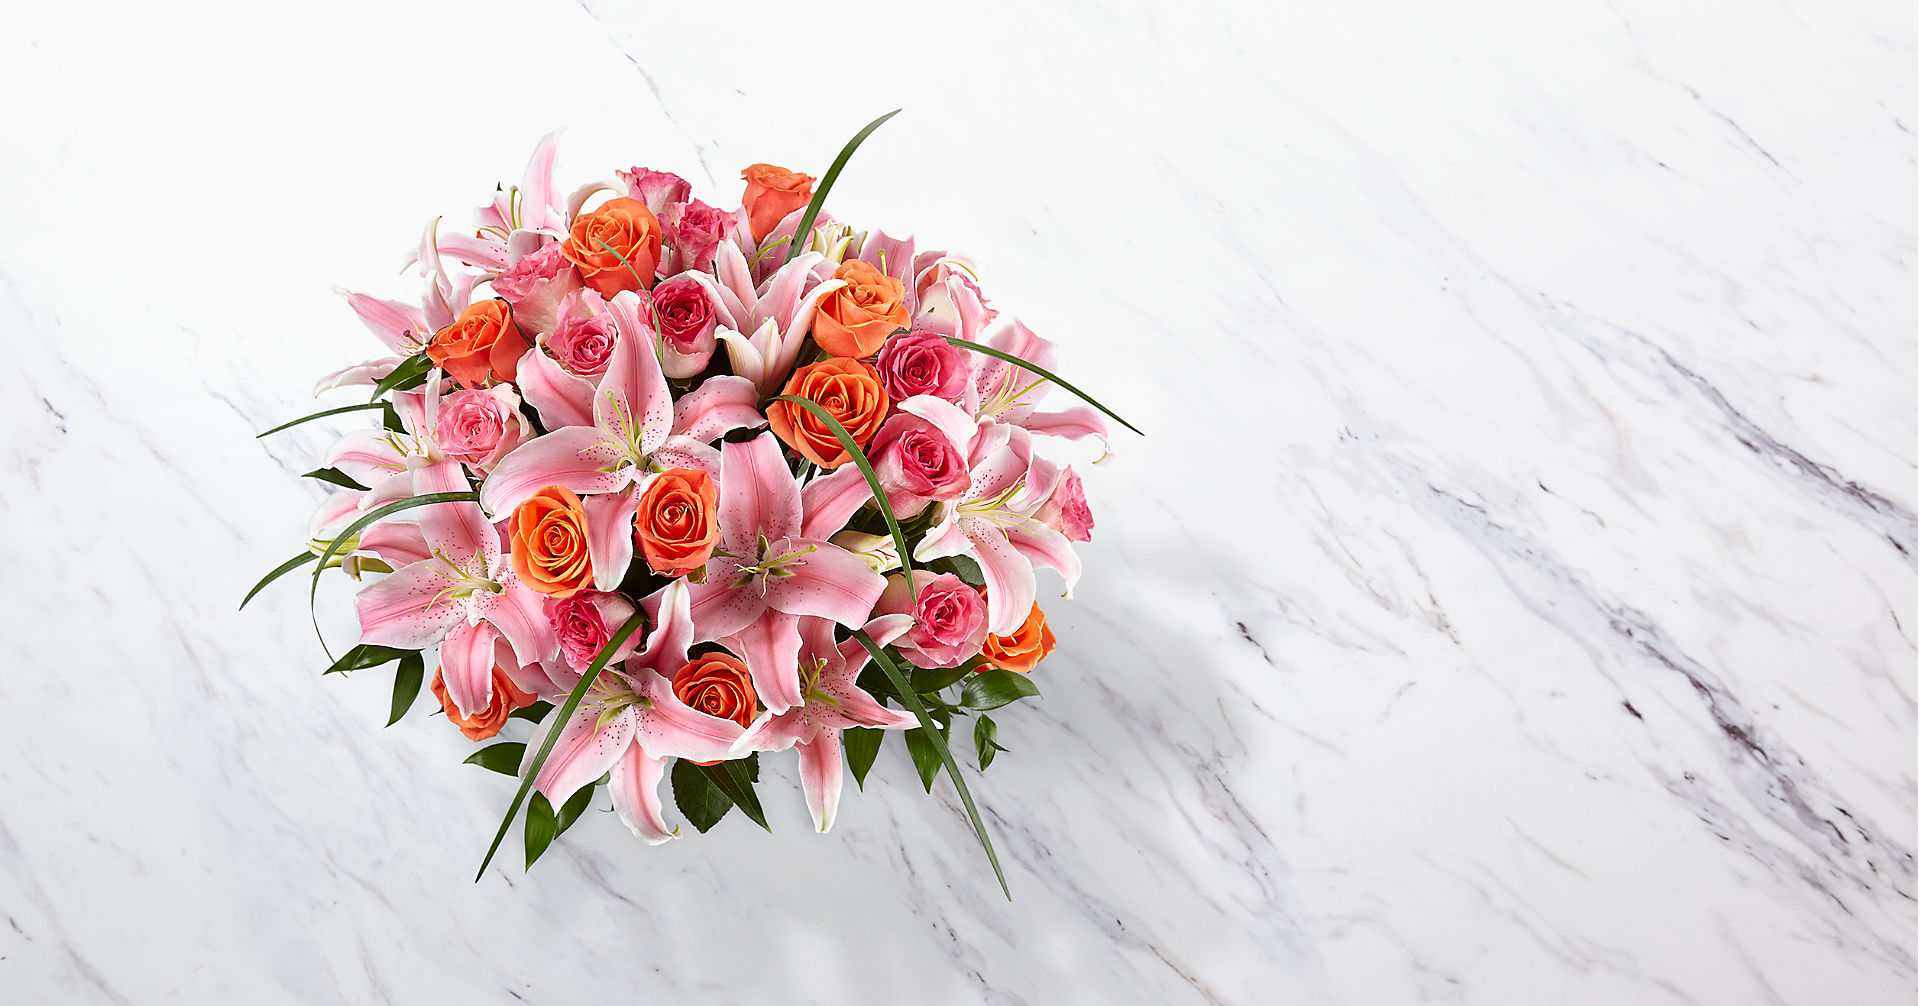 Sweetly Stunning™ Luxury Bouquet - Image 2 Of 4